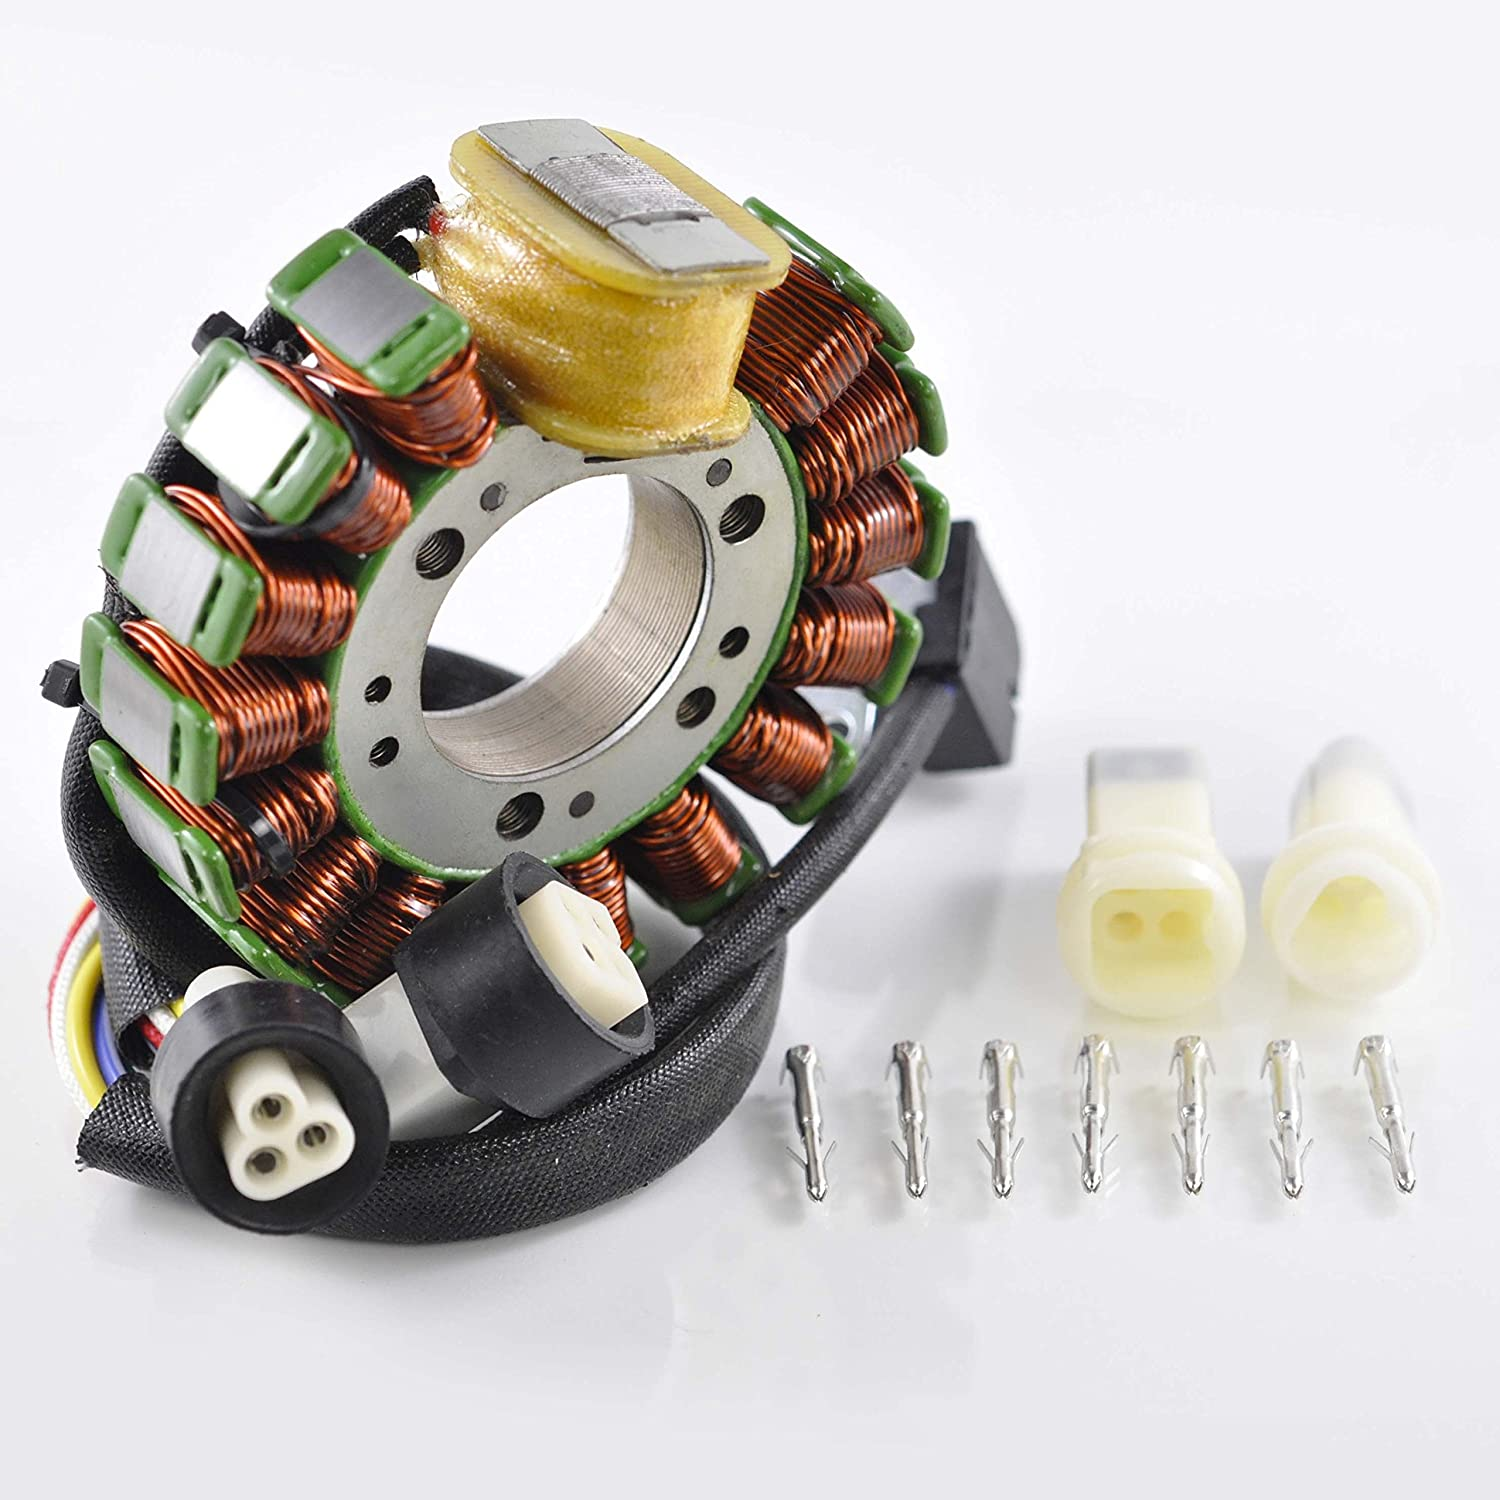 Stator For Yamaha Yfm 225 Moto 4 250 1986 1984 Ytm Wiring 1987 1988 1989 1990 1991 Oem Repl 59v 88510 20 00 Automotive